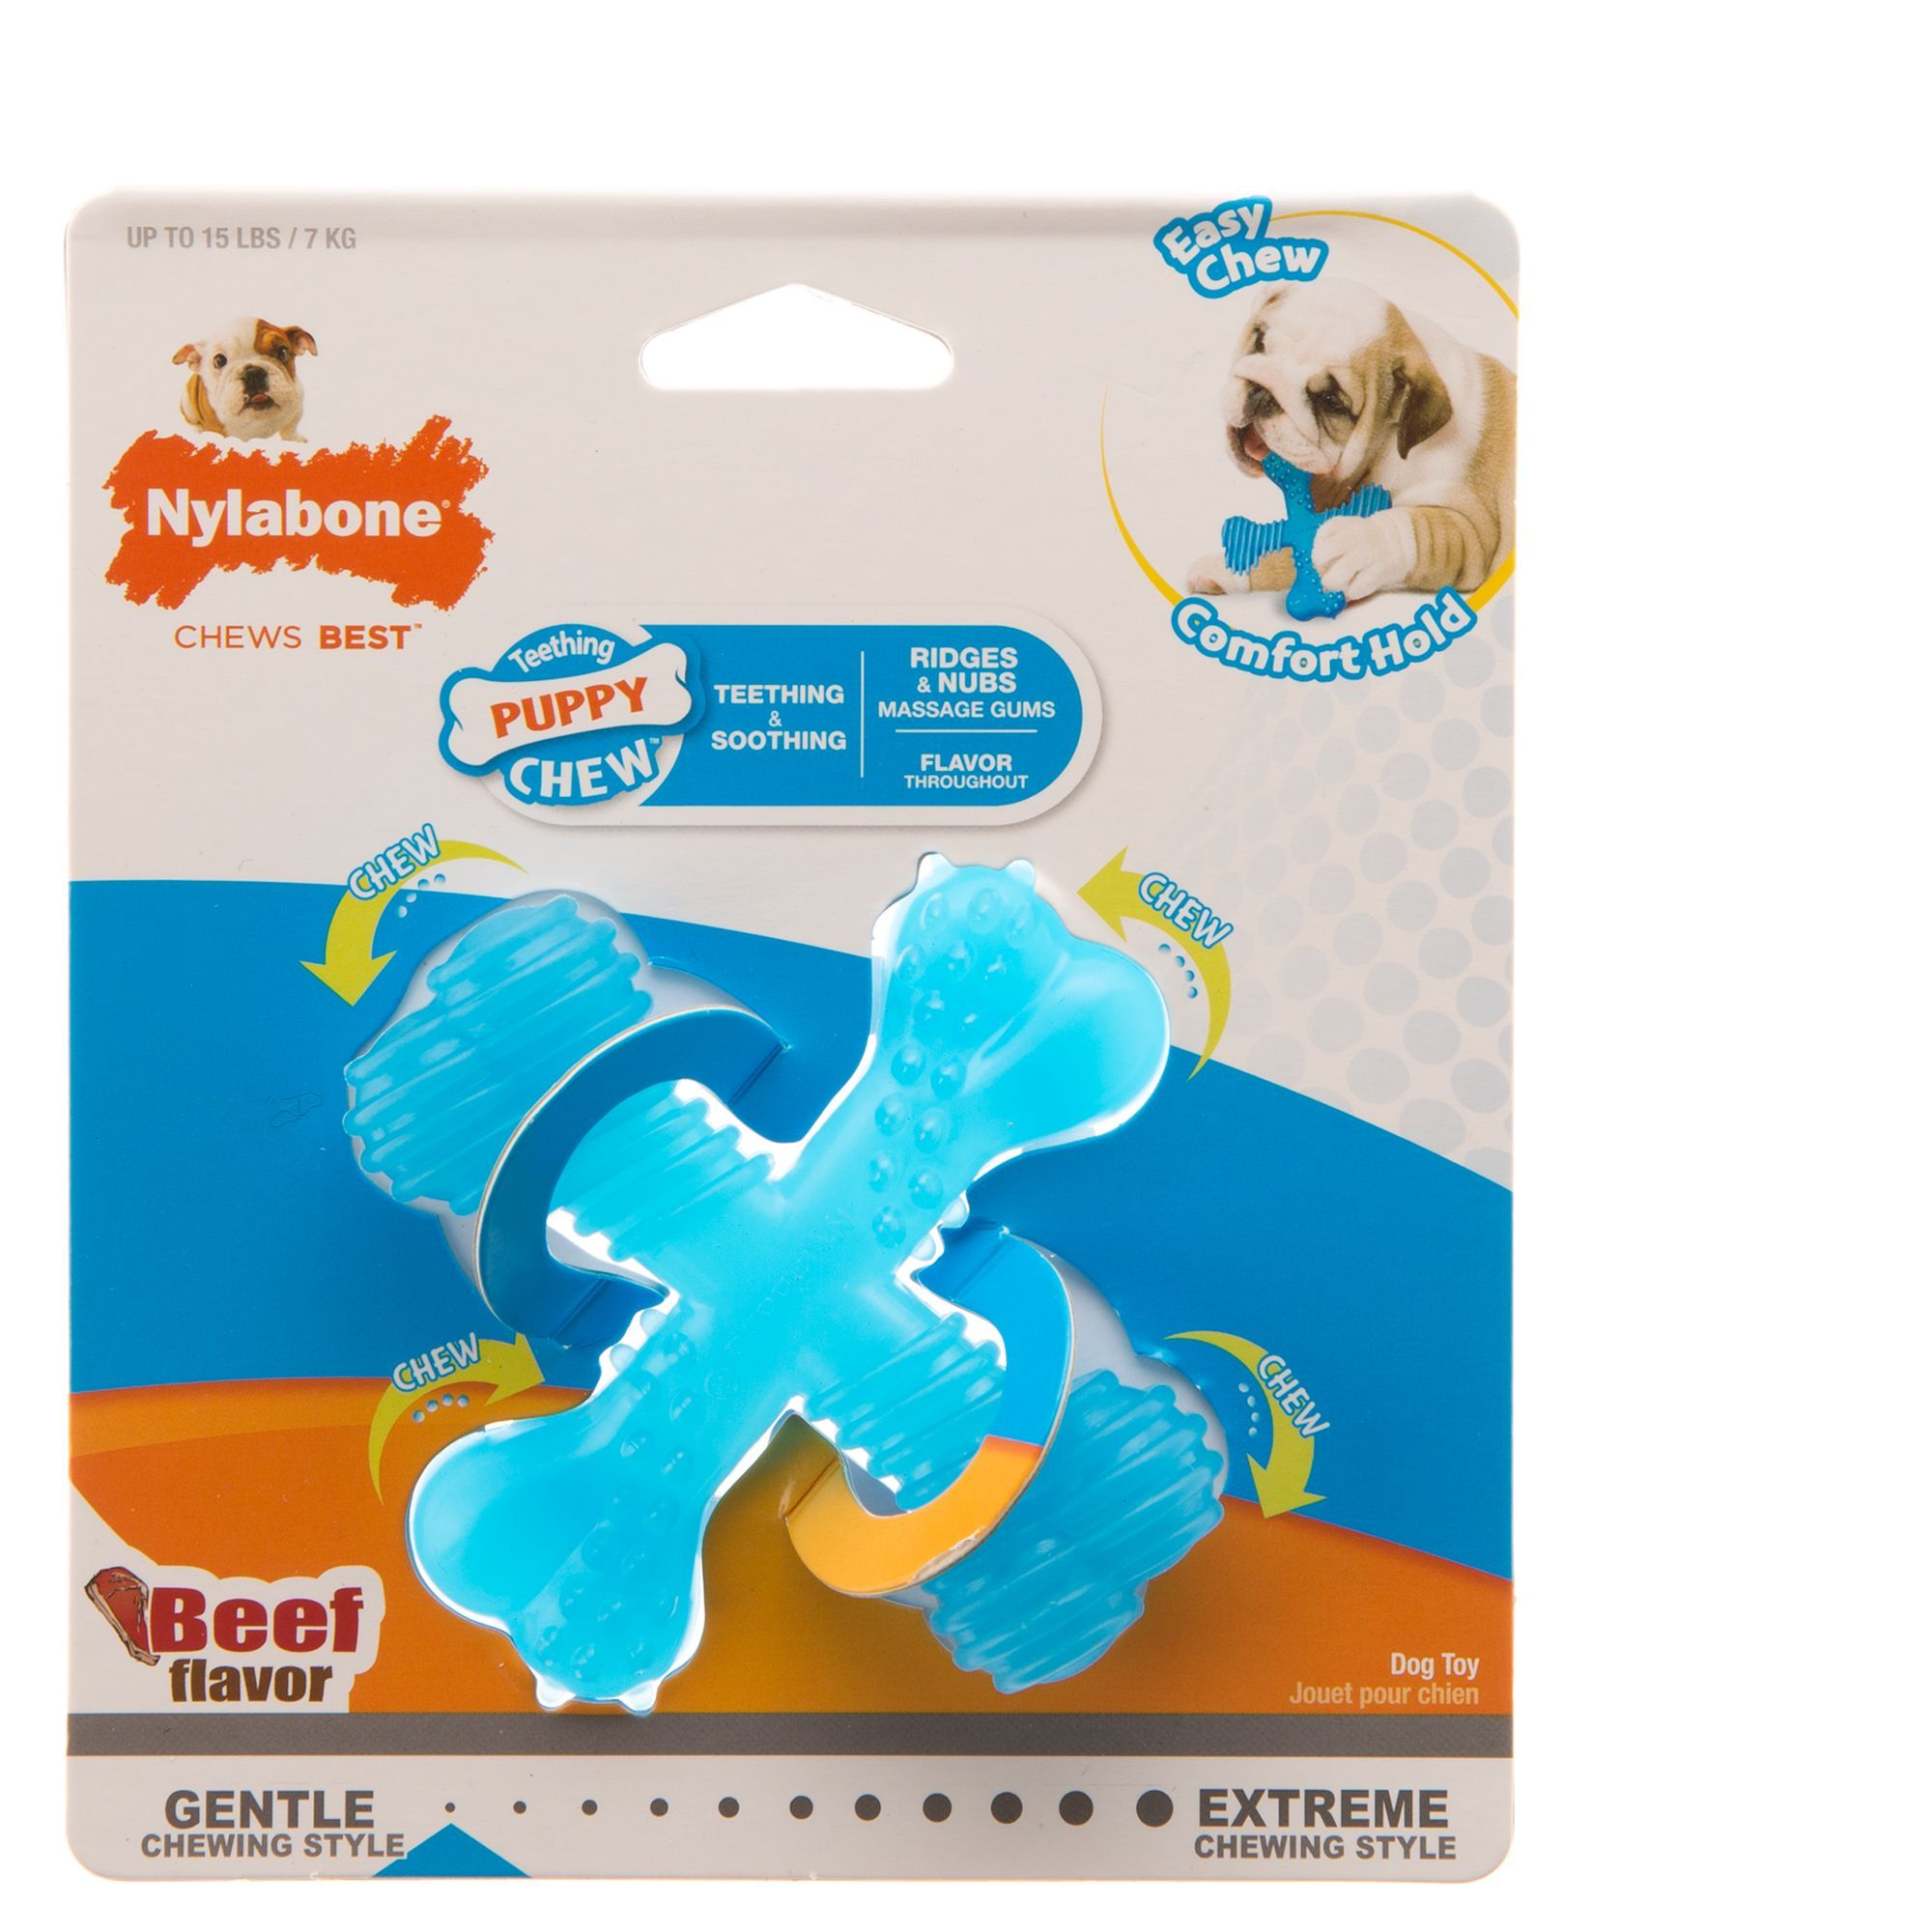 Nylabone Puppy X Bone Dog Toy In 2020 Dog Toys Puppies Puppy